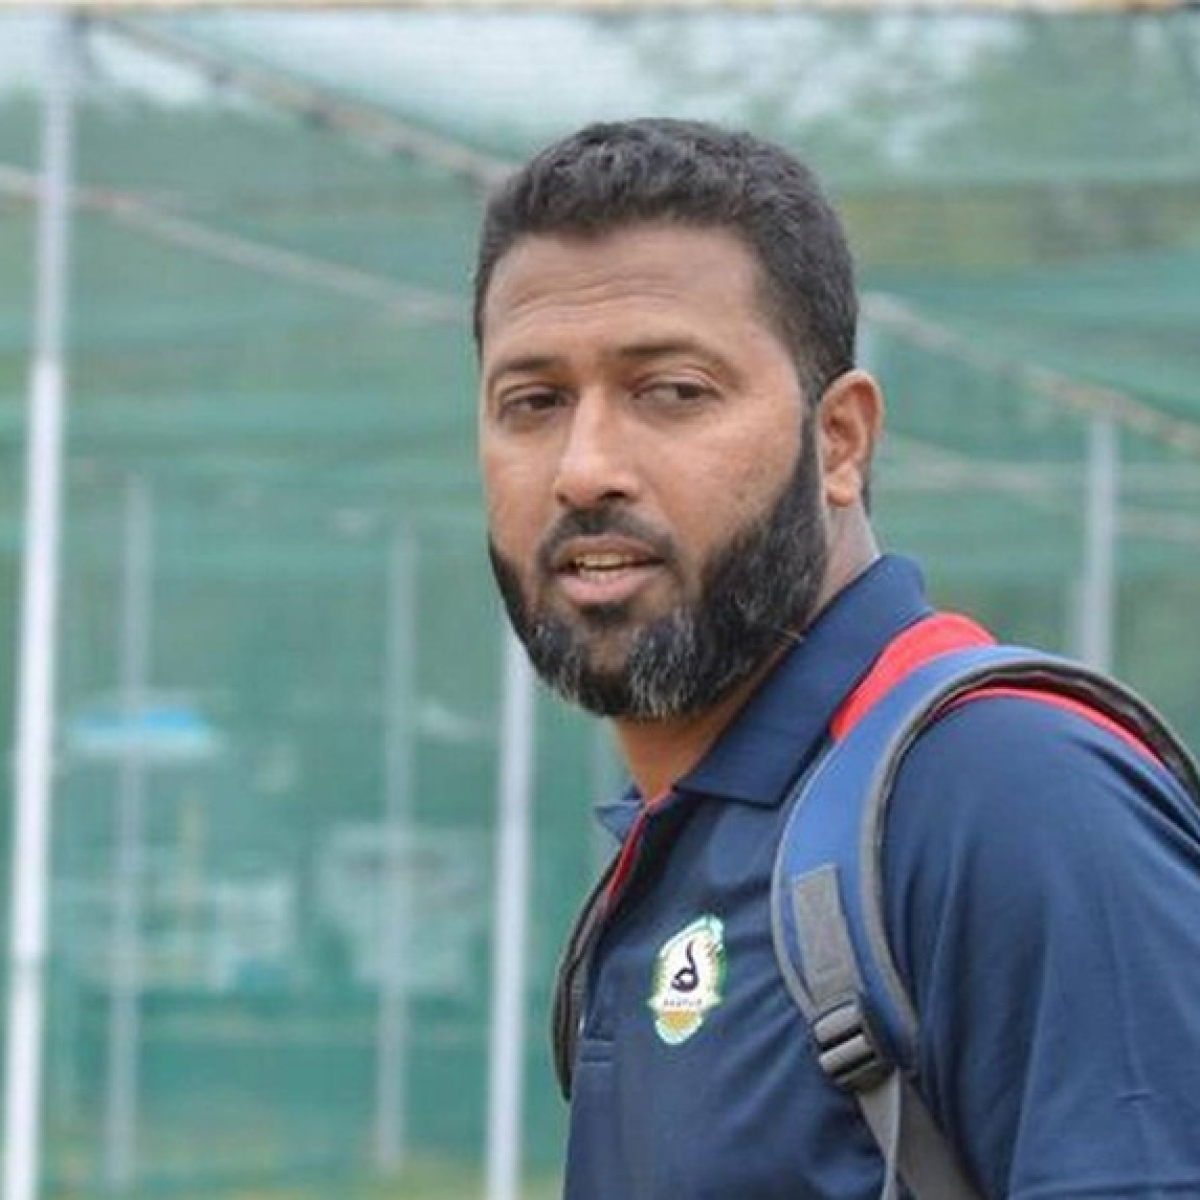 Time to say Arey yaar about Aarey forest: Wasim Jaffer